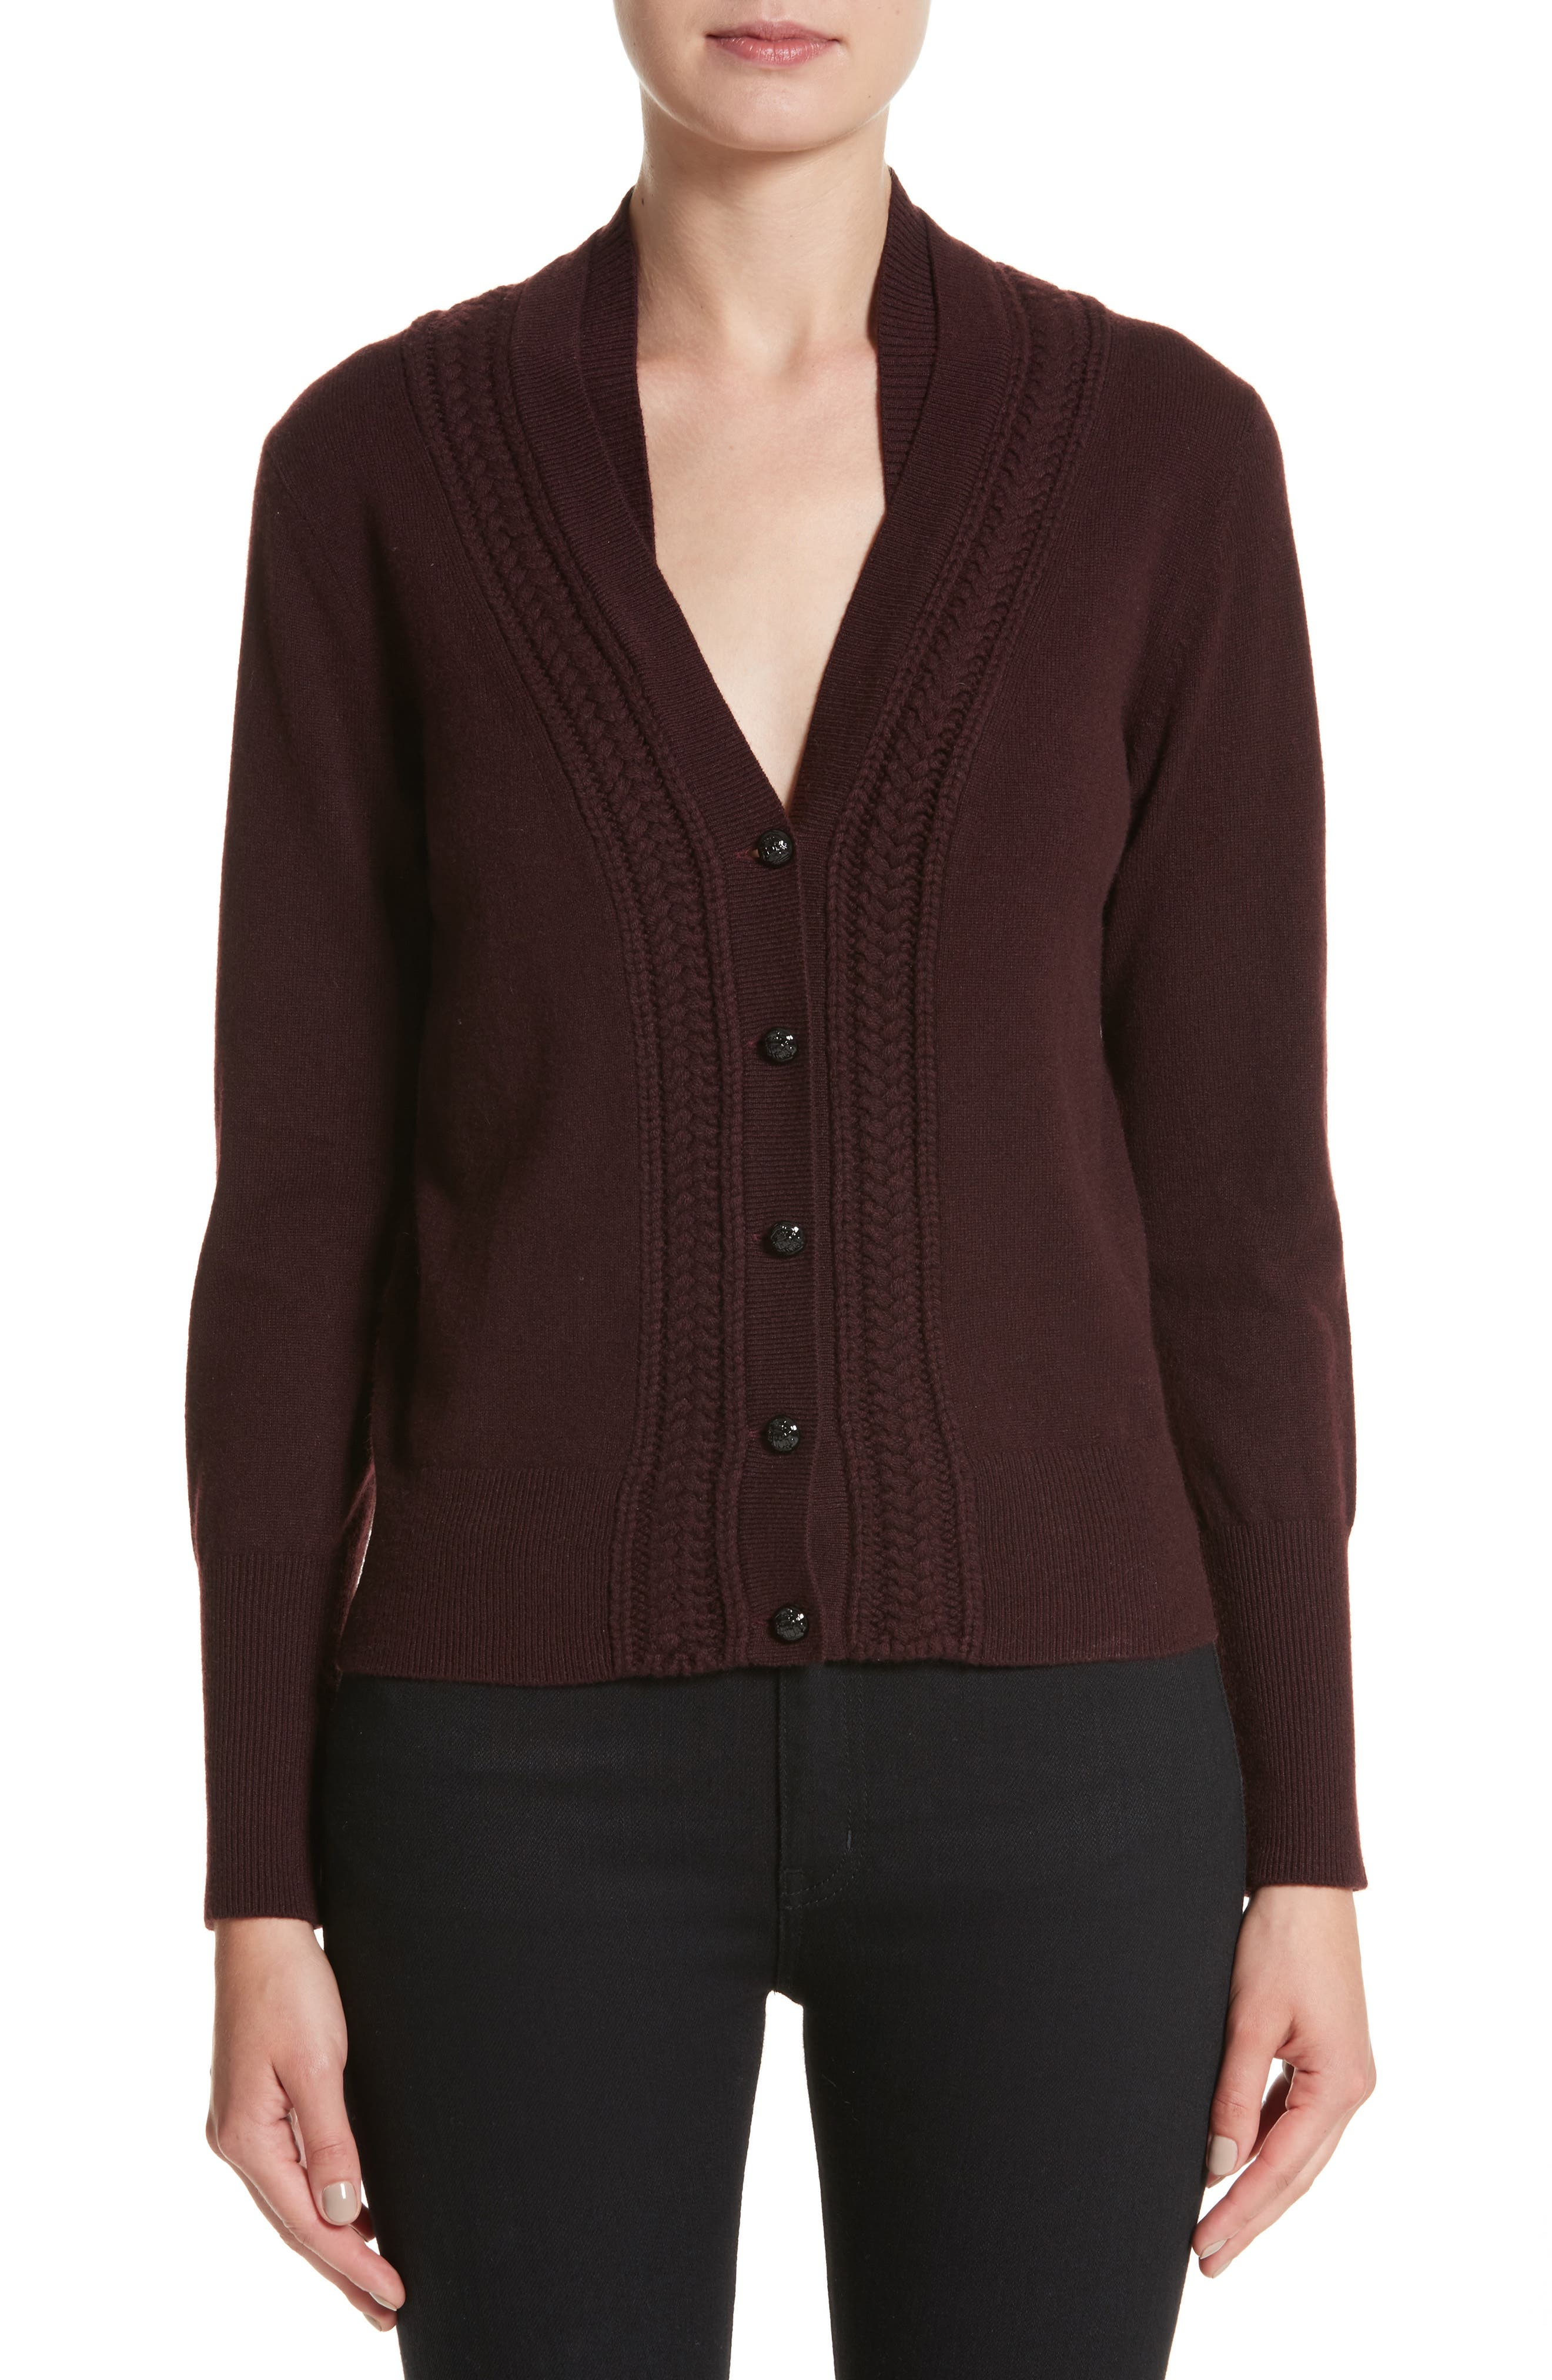 Burberry Natisone Cashmere Cardigan